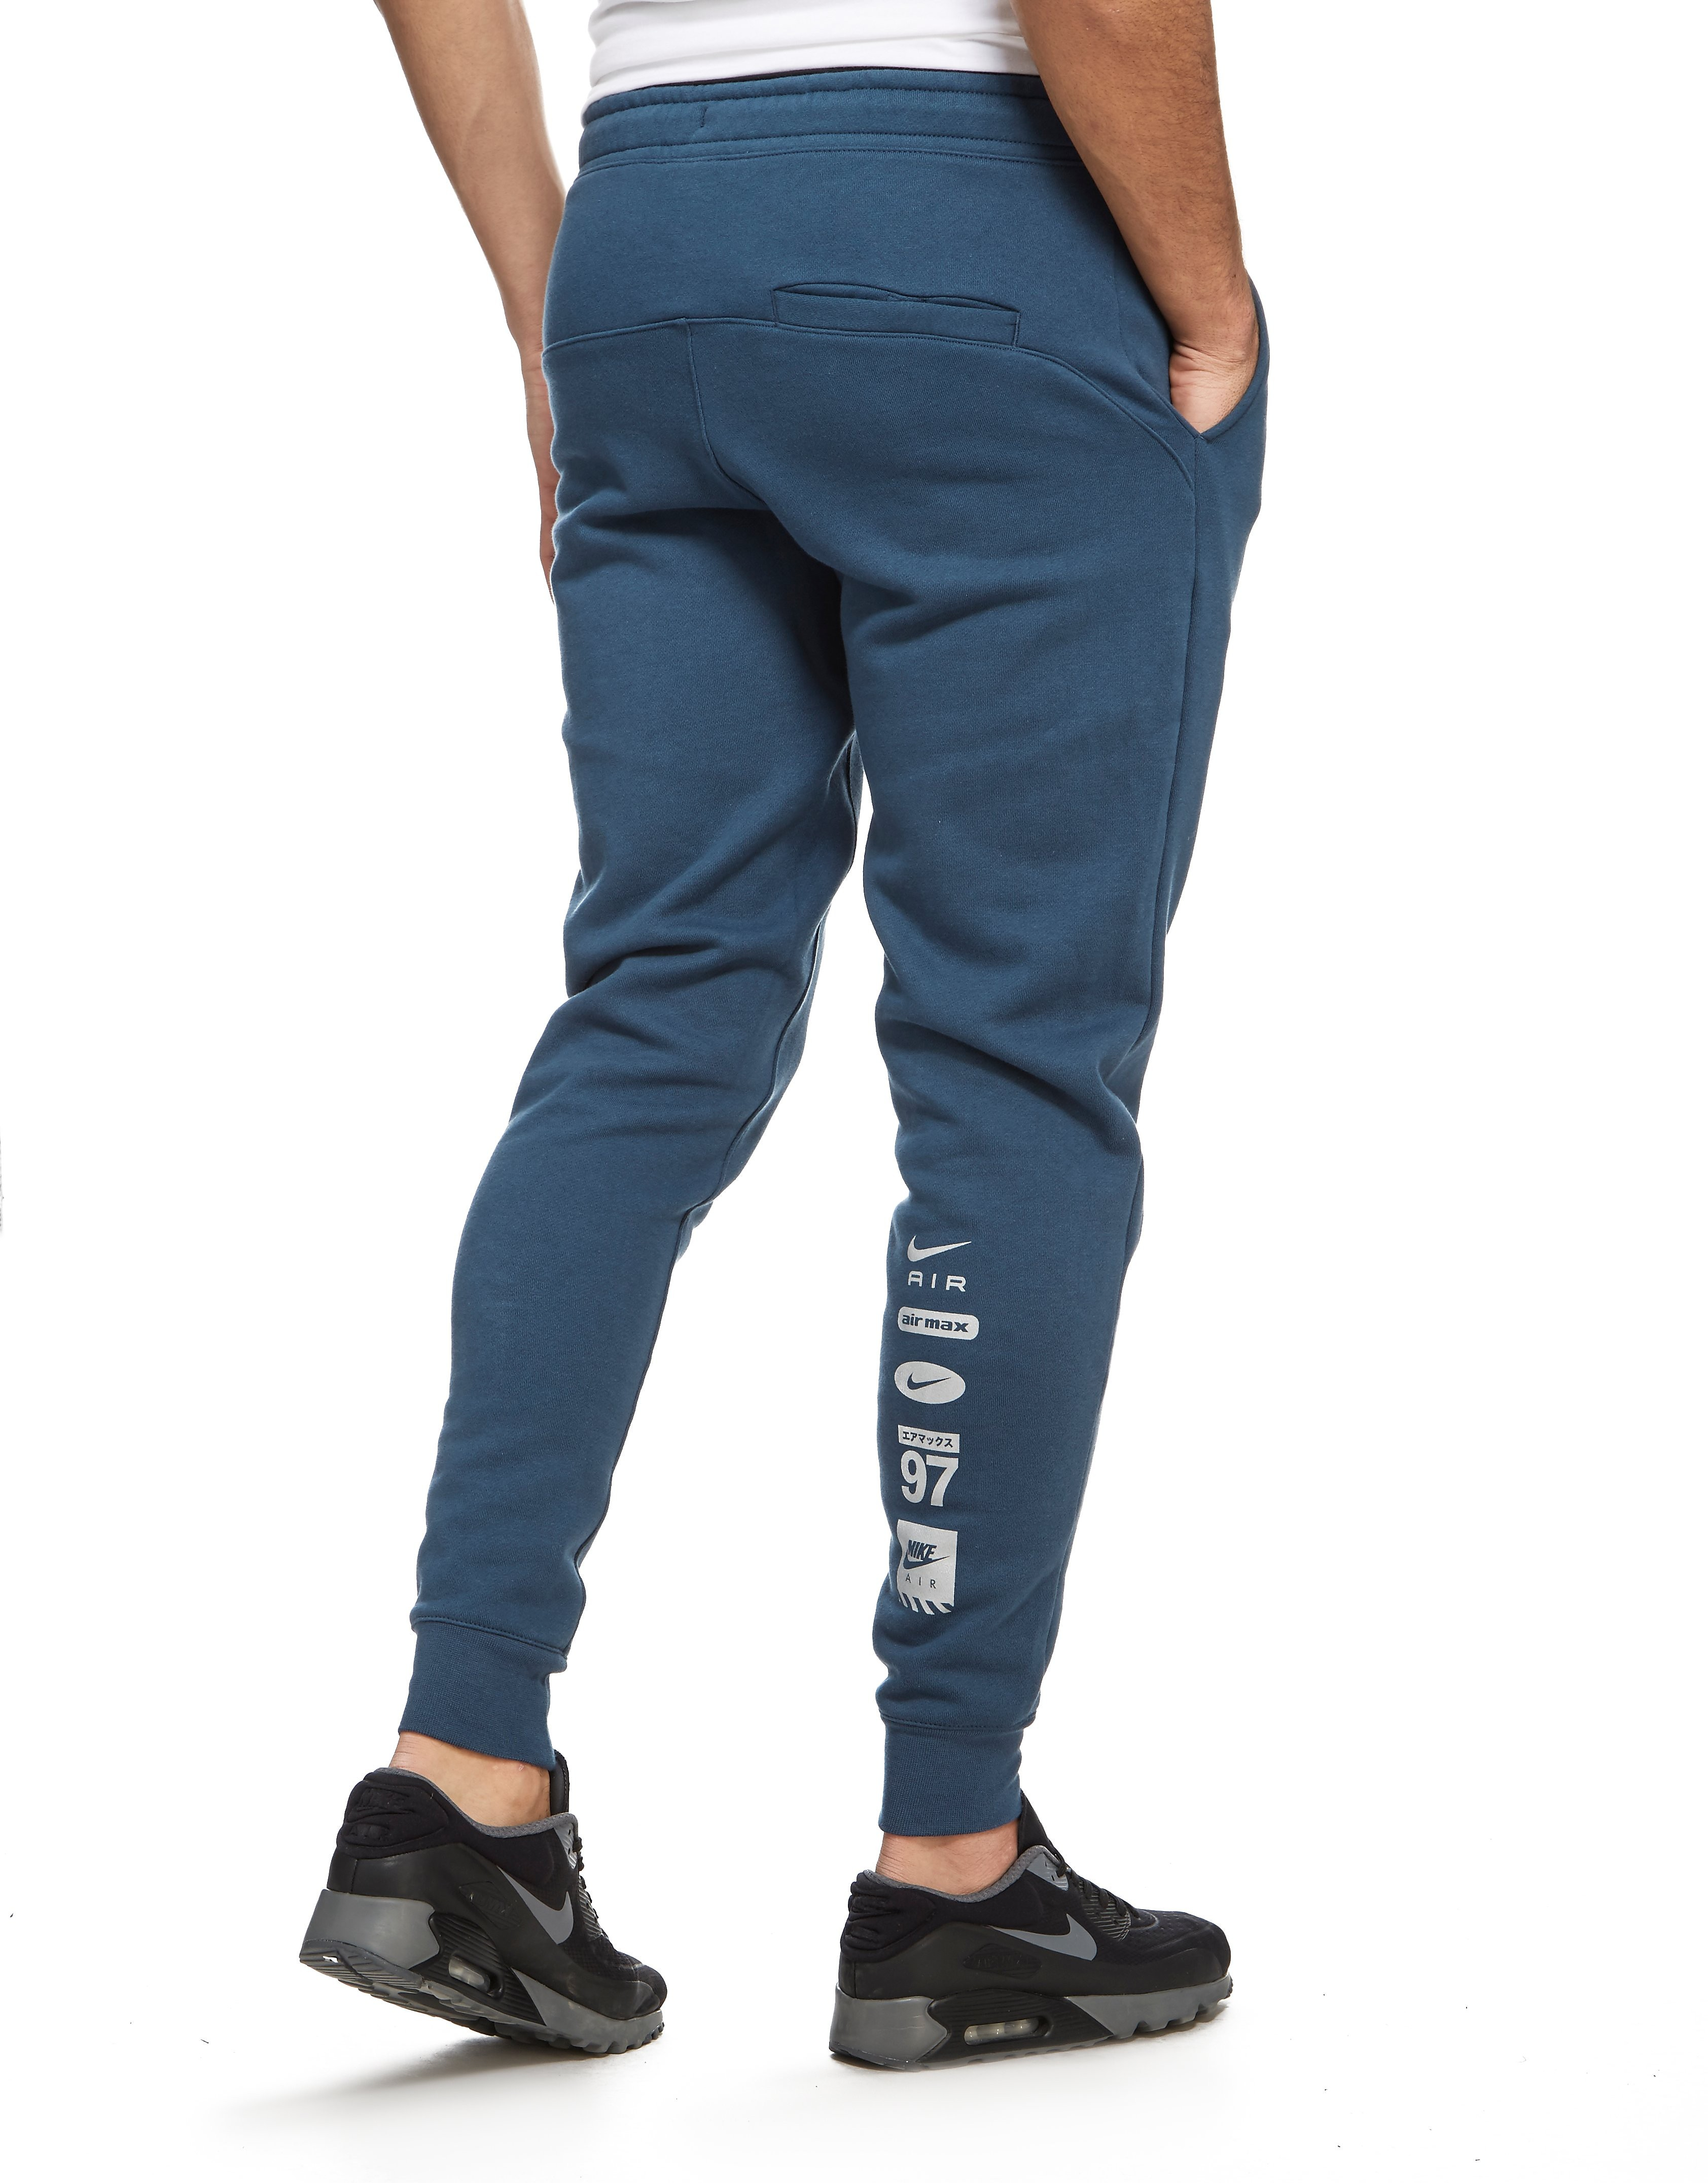 Nike Air Hybrid Jogging Pants